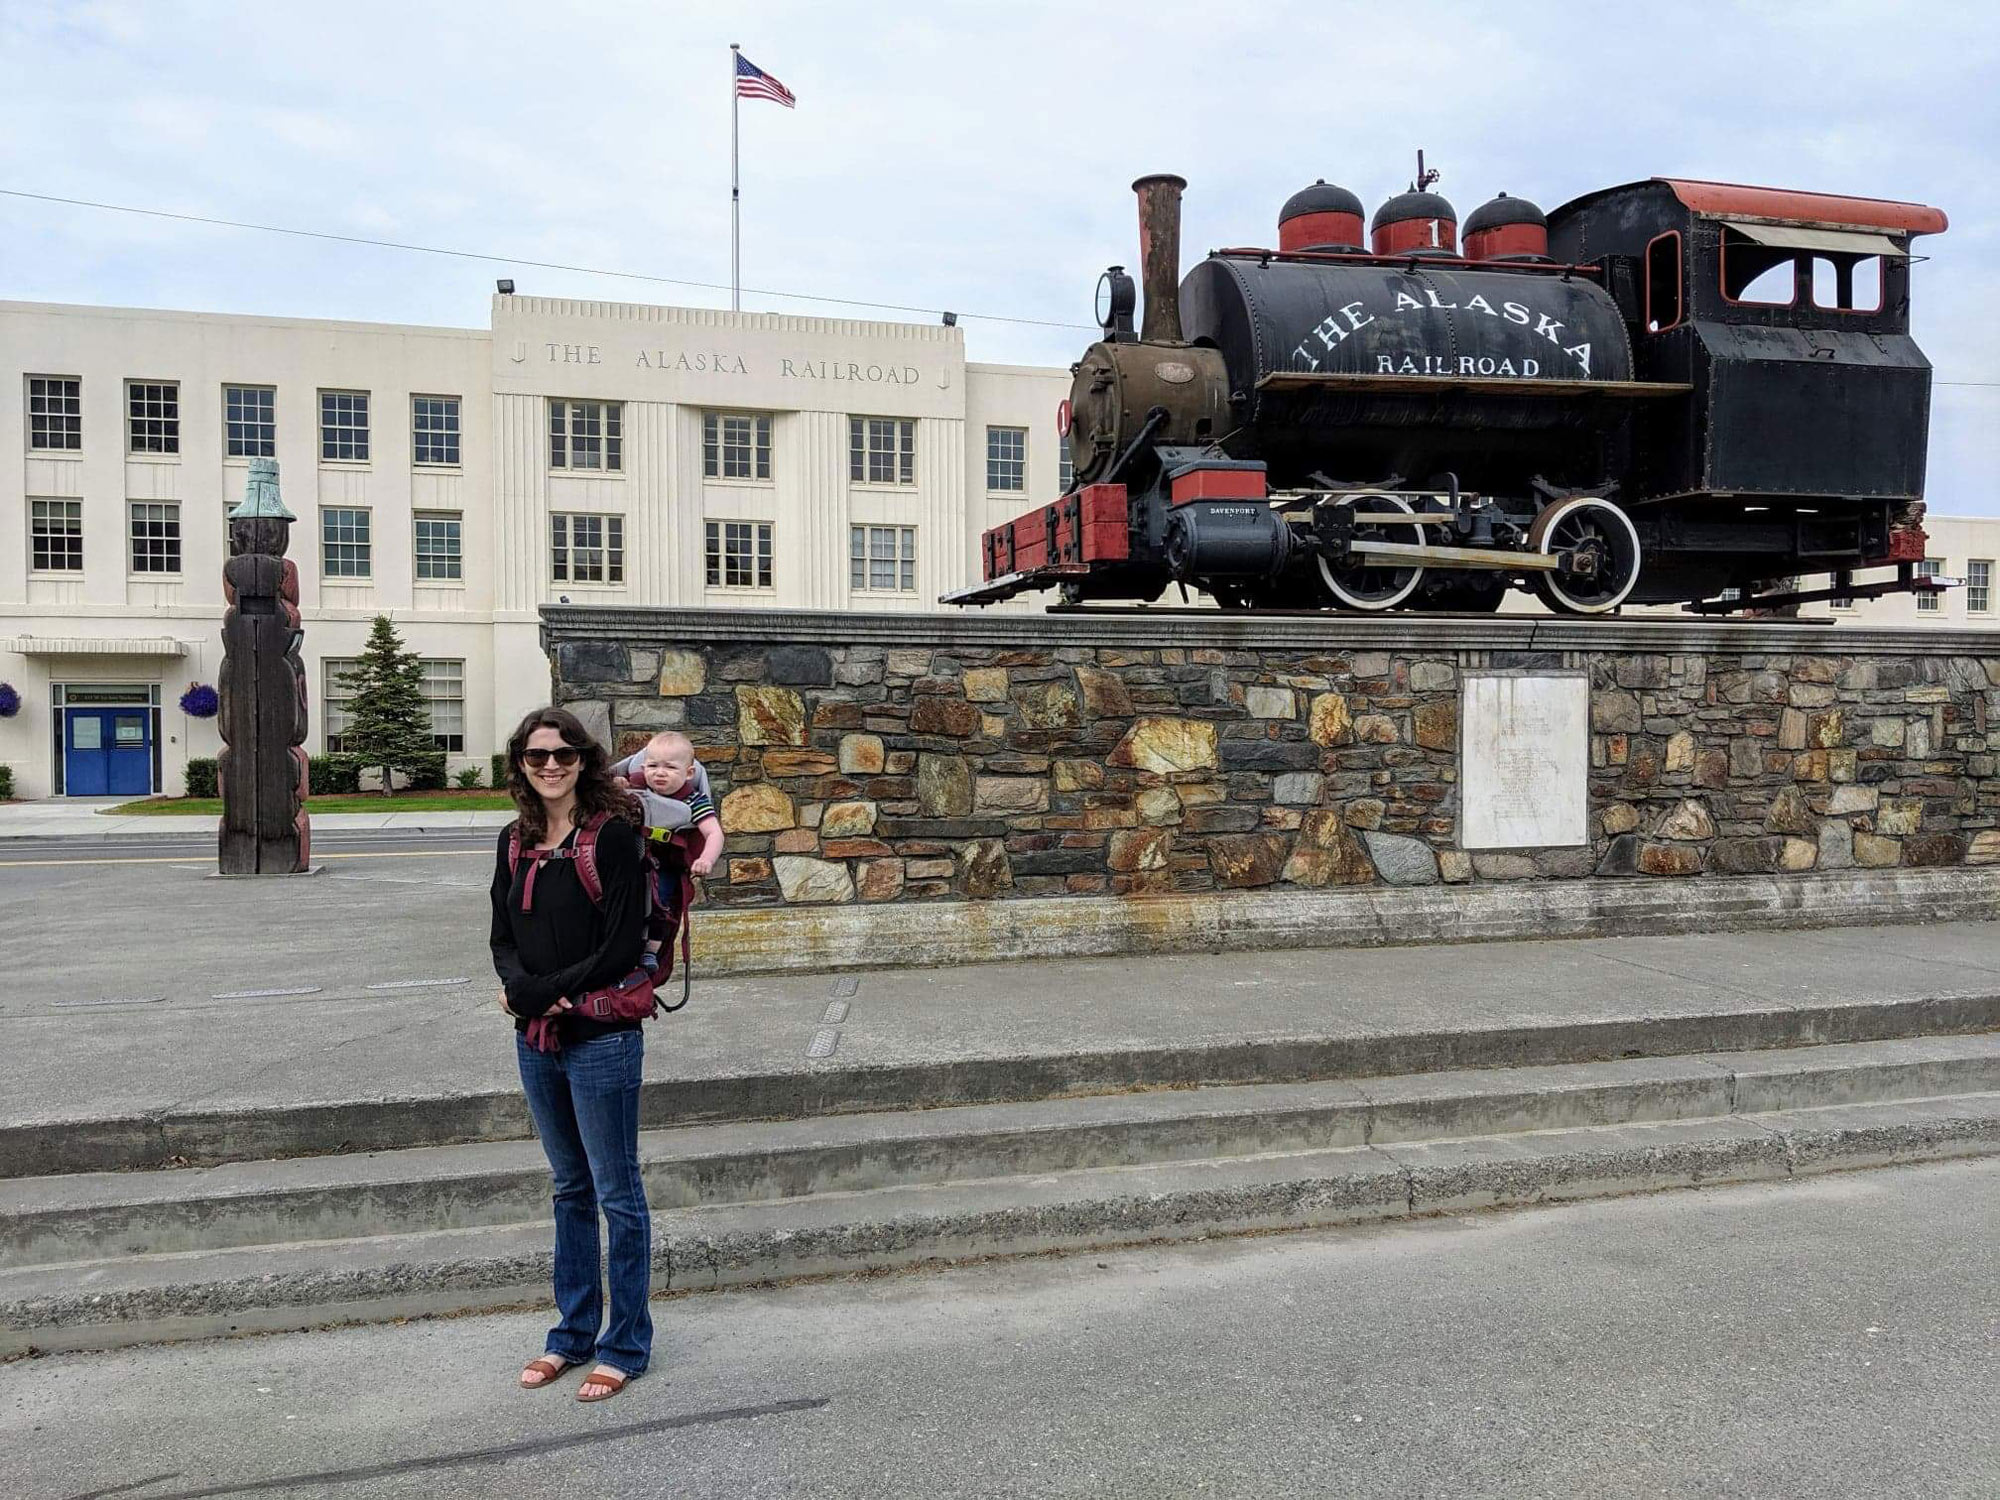 Alexandria Boley with a baby in a backpack in front of The Alaska Railroad building